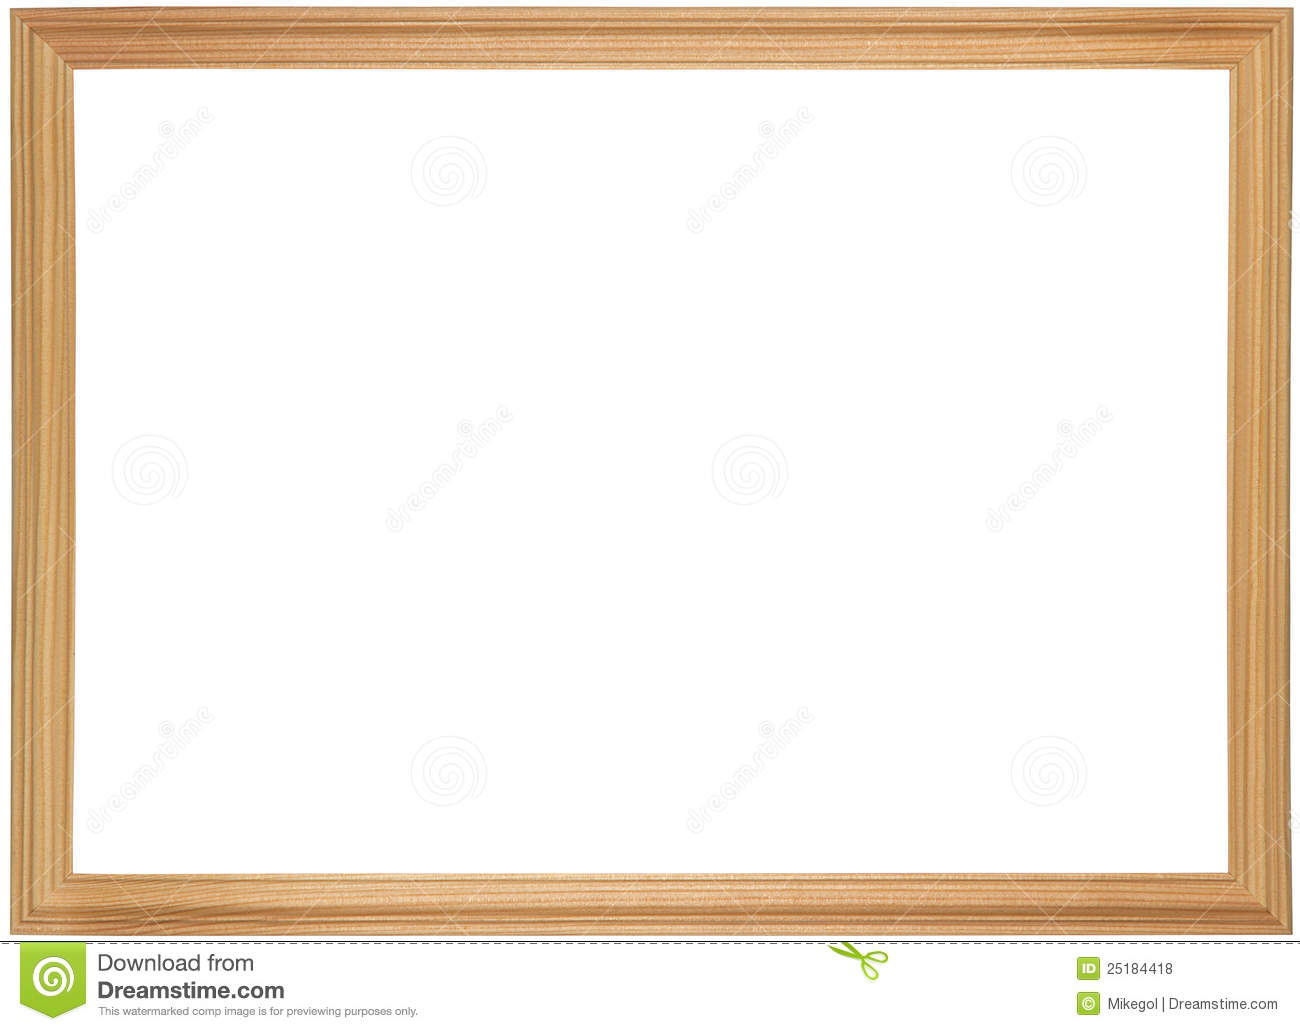 Wooden frame for painting stock photo. Image of border - 25184418